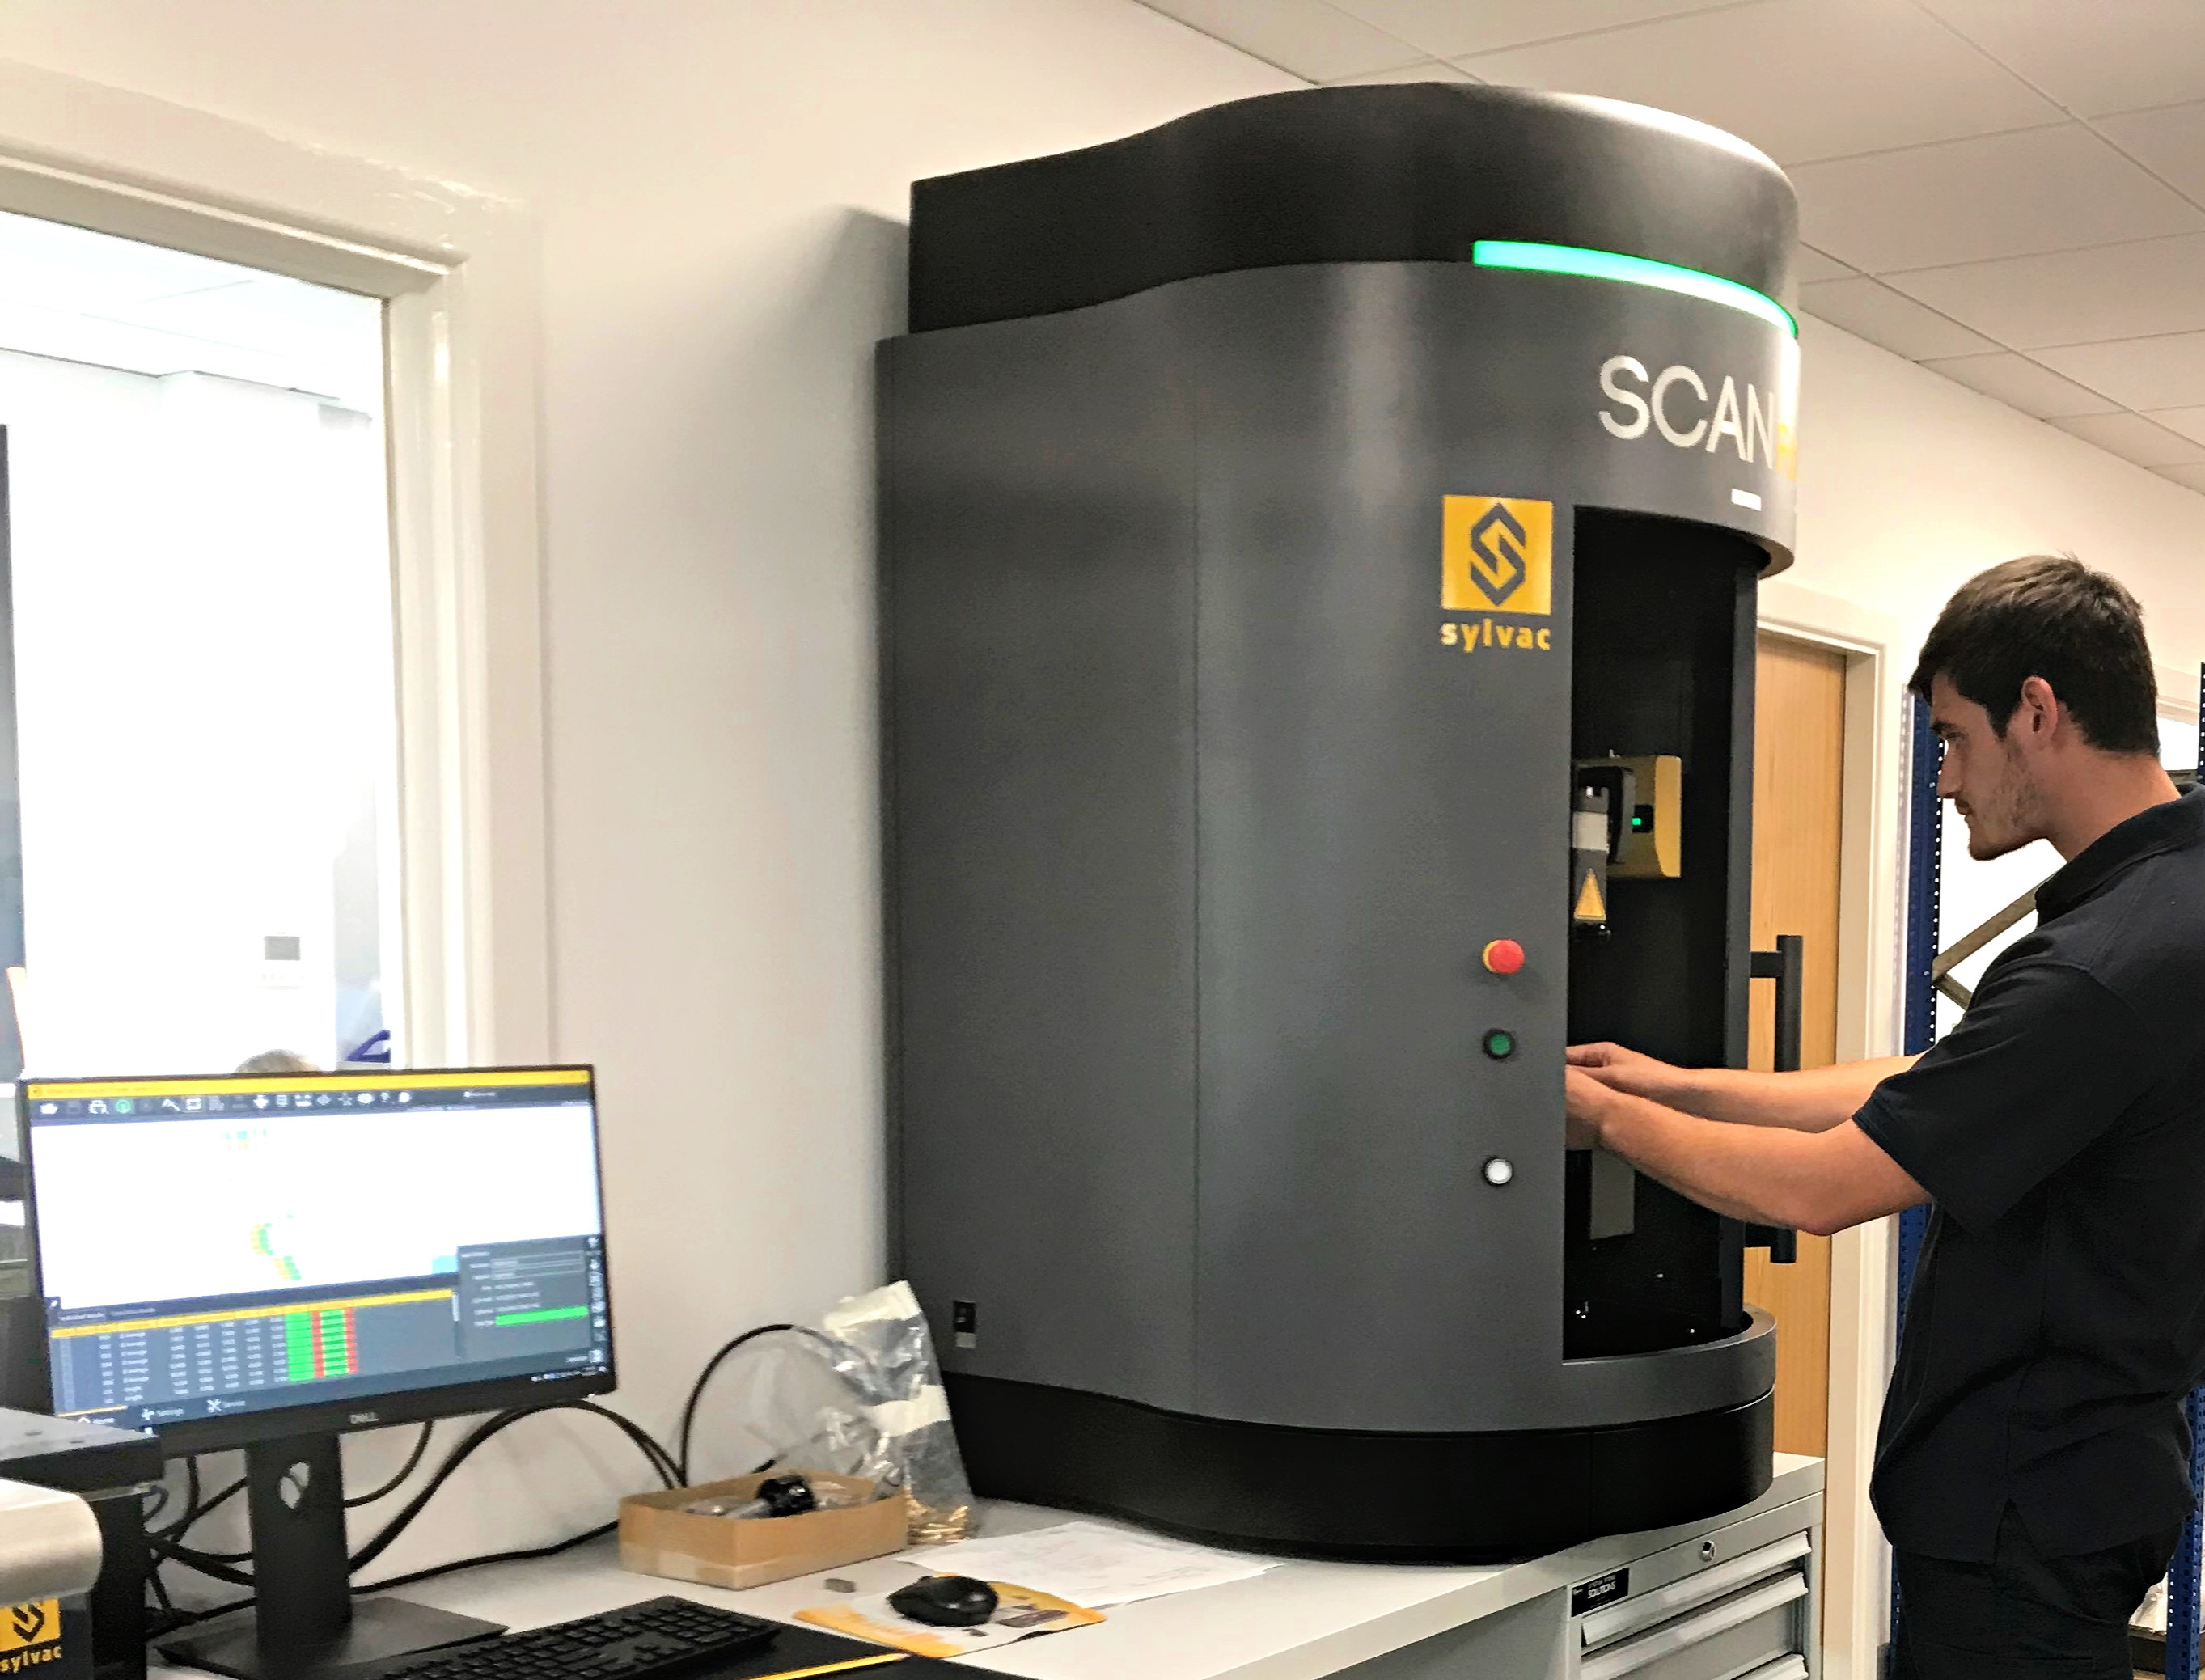 October 2019: Qualiturn Products Ltd Reduces Turned Part Inspection Time to Seconds with Sylvac Scan F60T